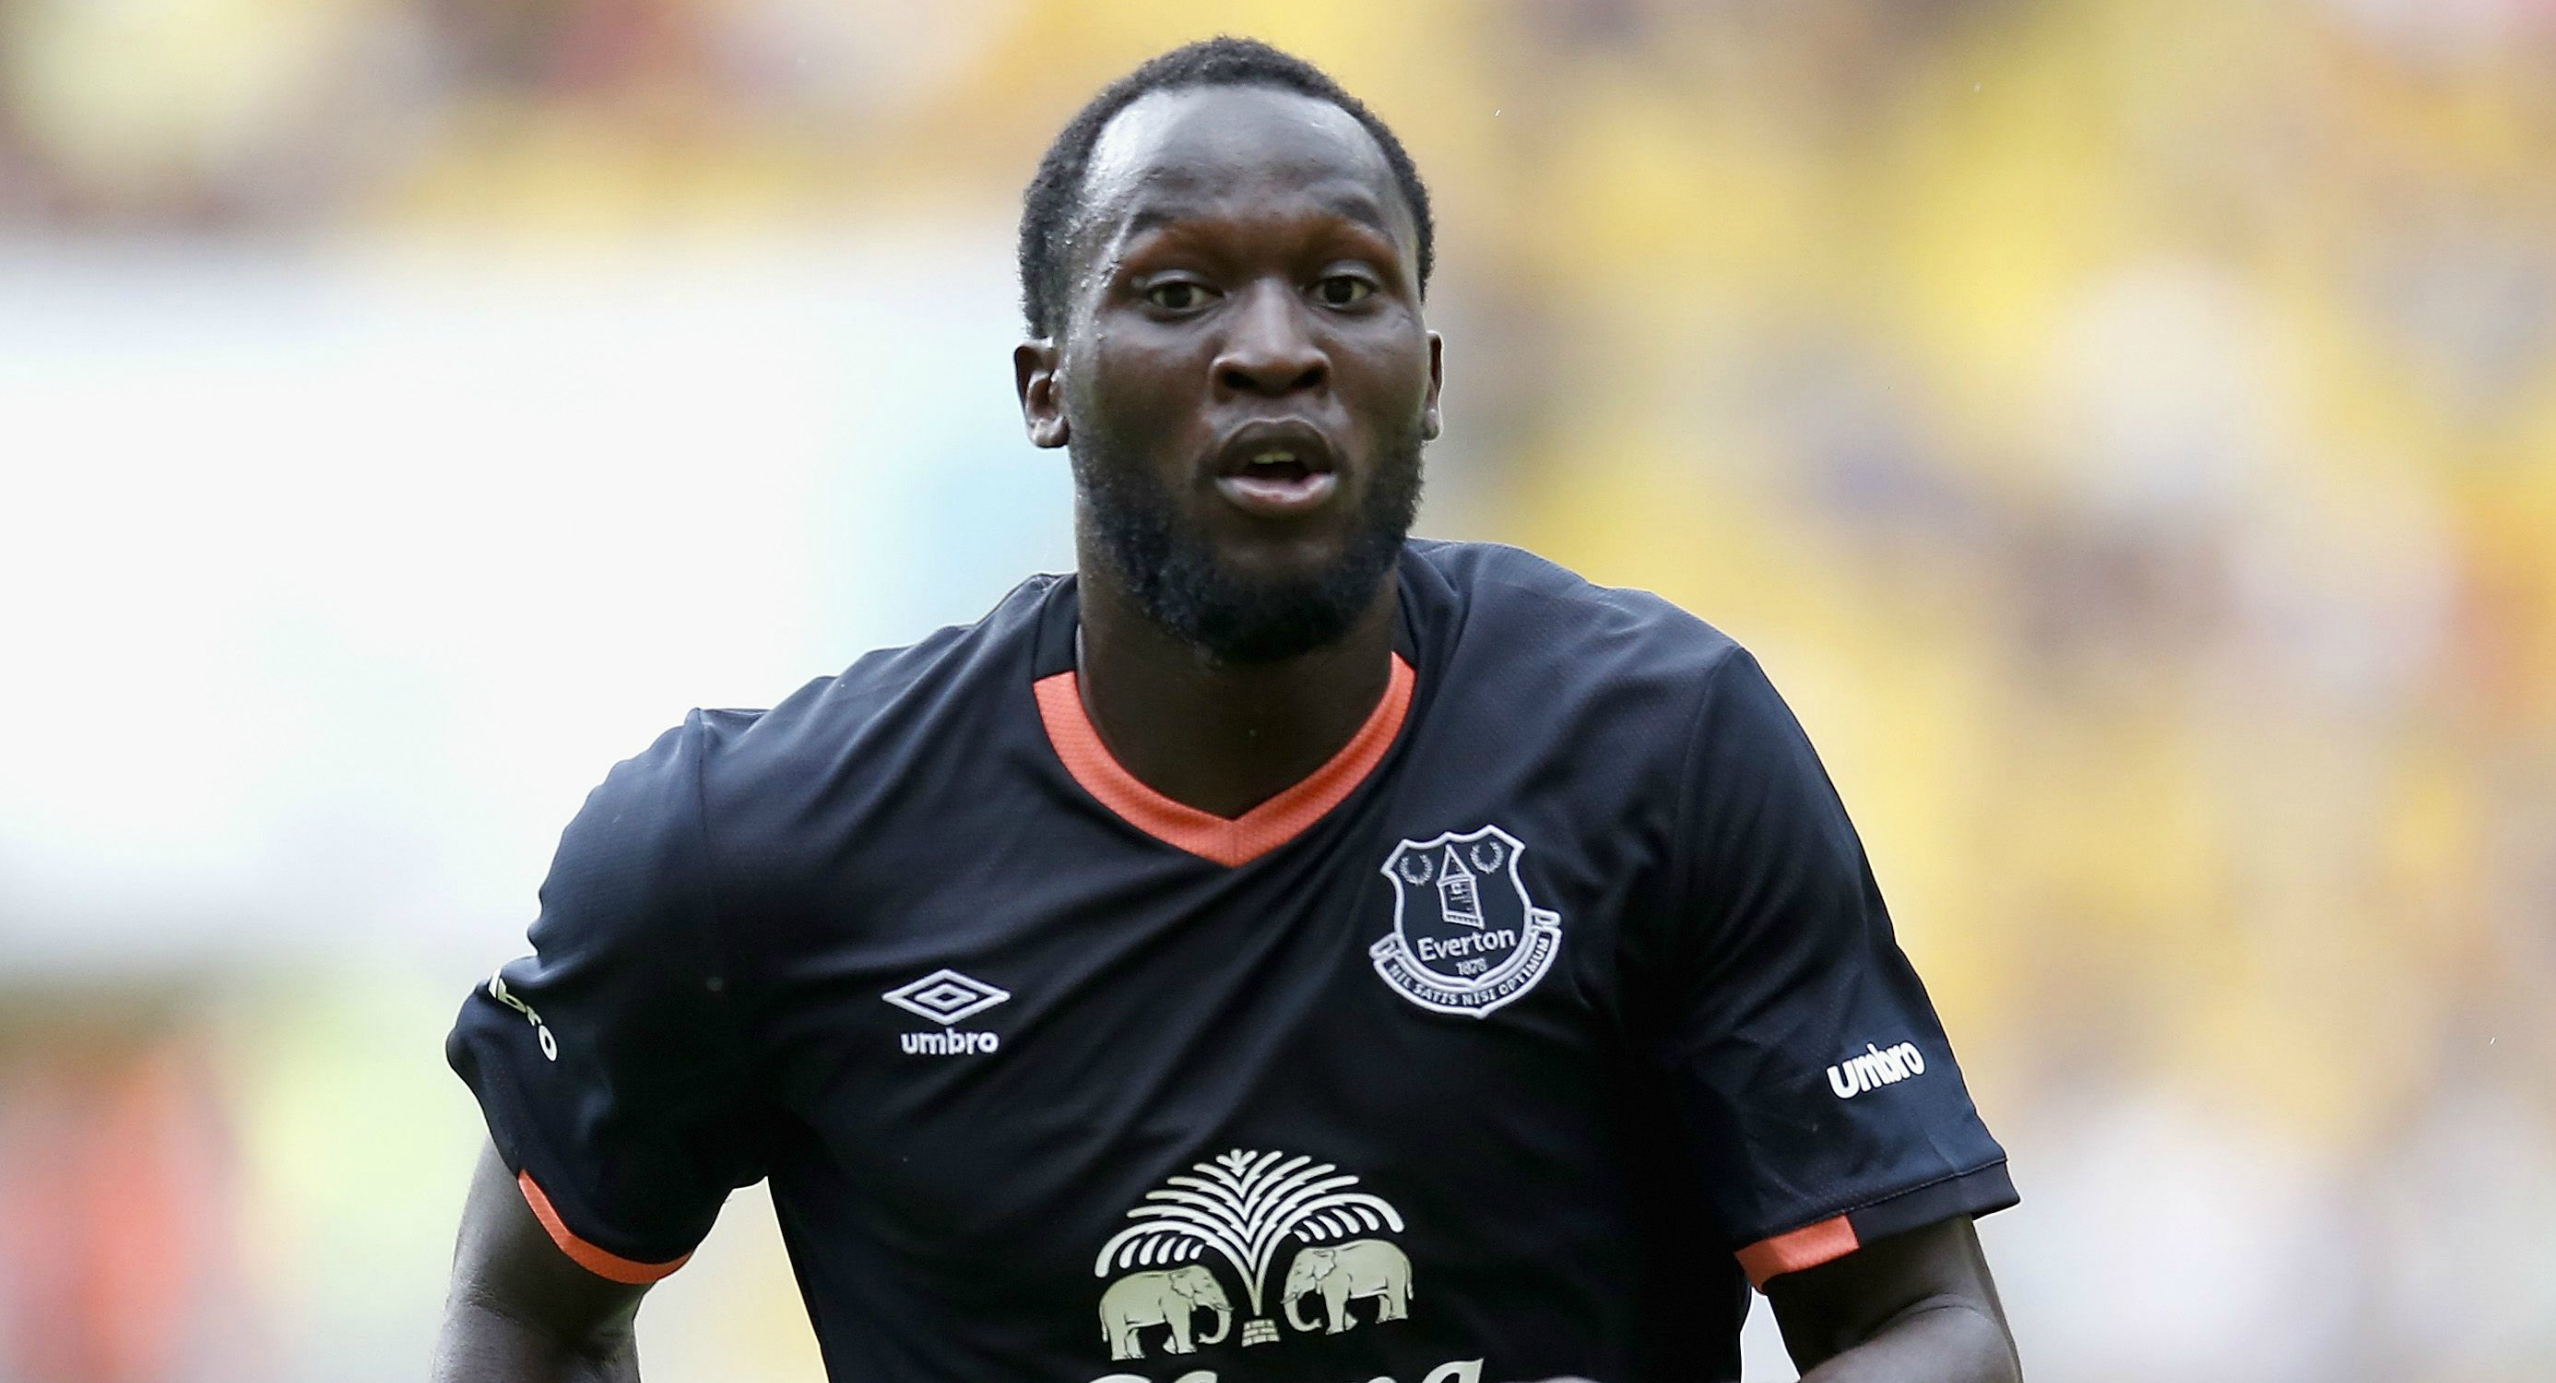 Everton open contract talks with Romelu Lukaku after becoming infuriated with Chelsea's transfer chase